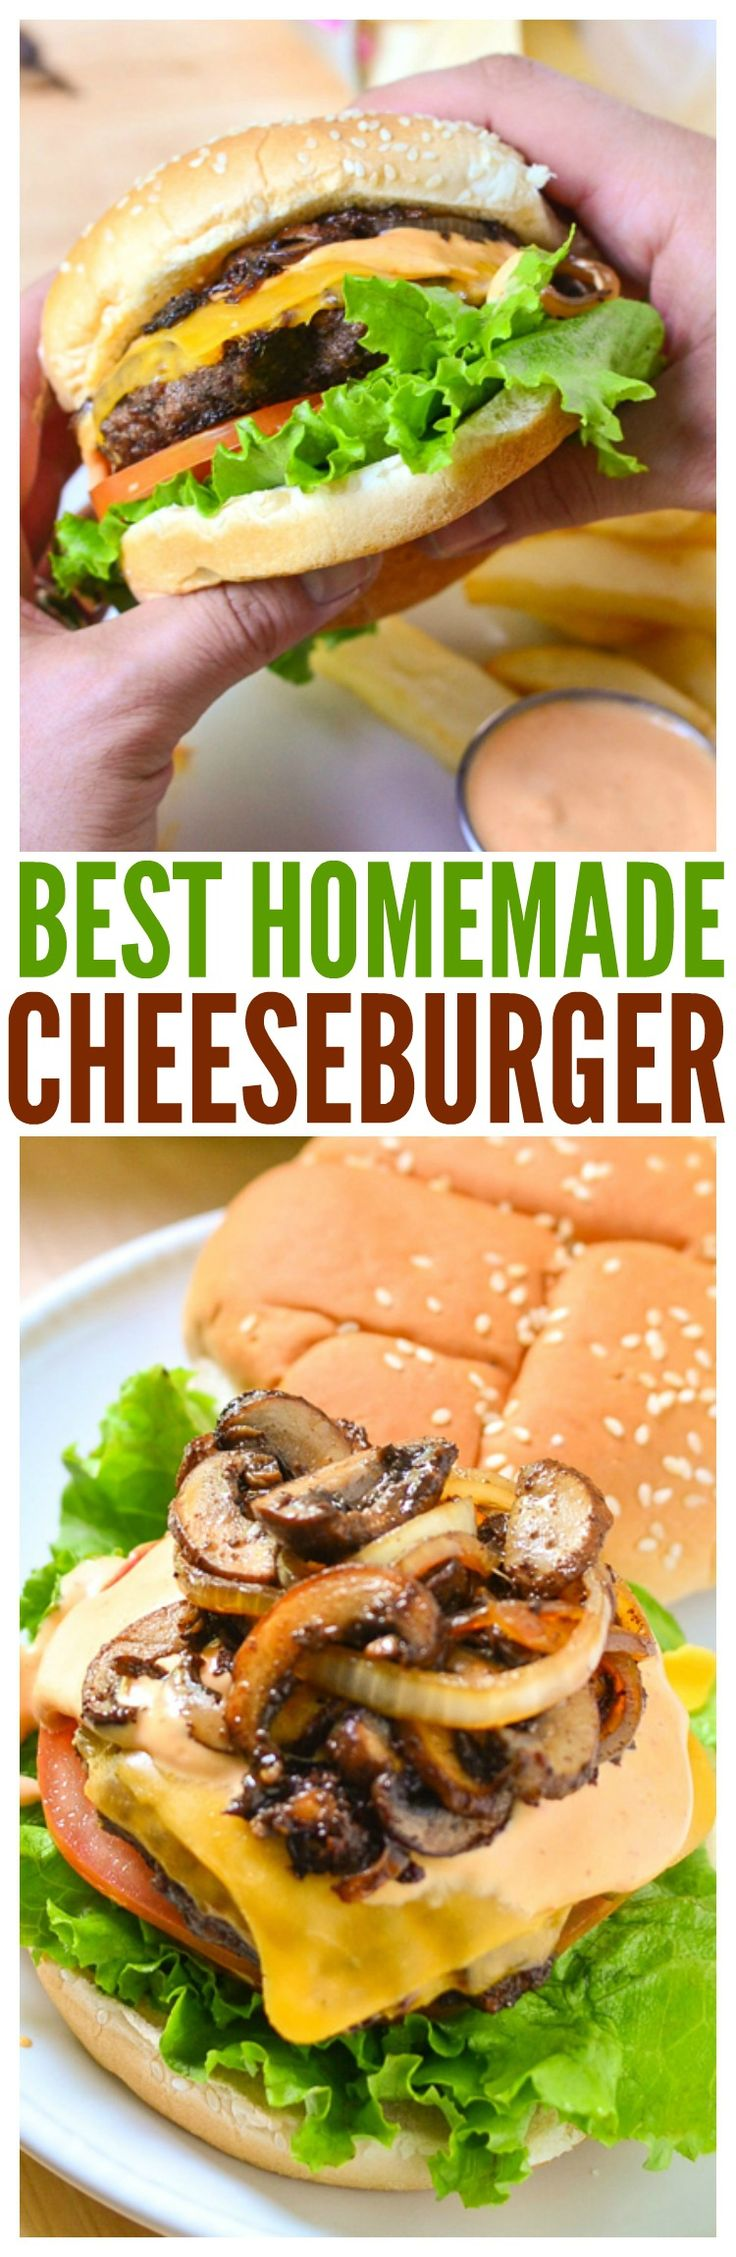 The best cheeseburger recipe! From the spicy mayo sauce crispy baked french fries this is an ultimate grilled recipe for the bbq party.  via @CourtneysSweets